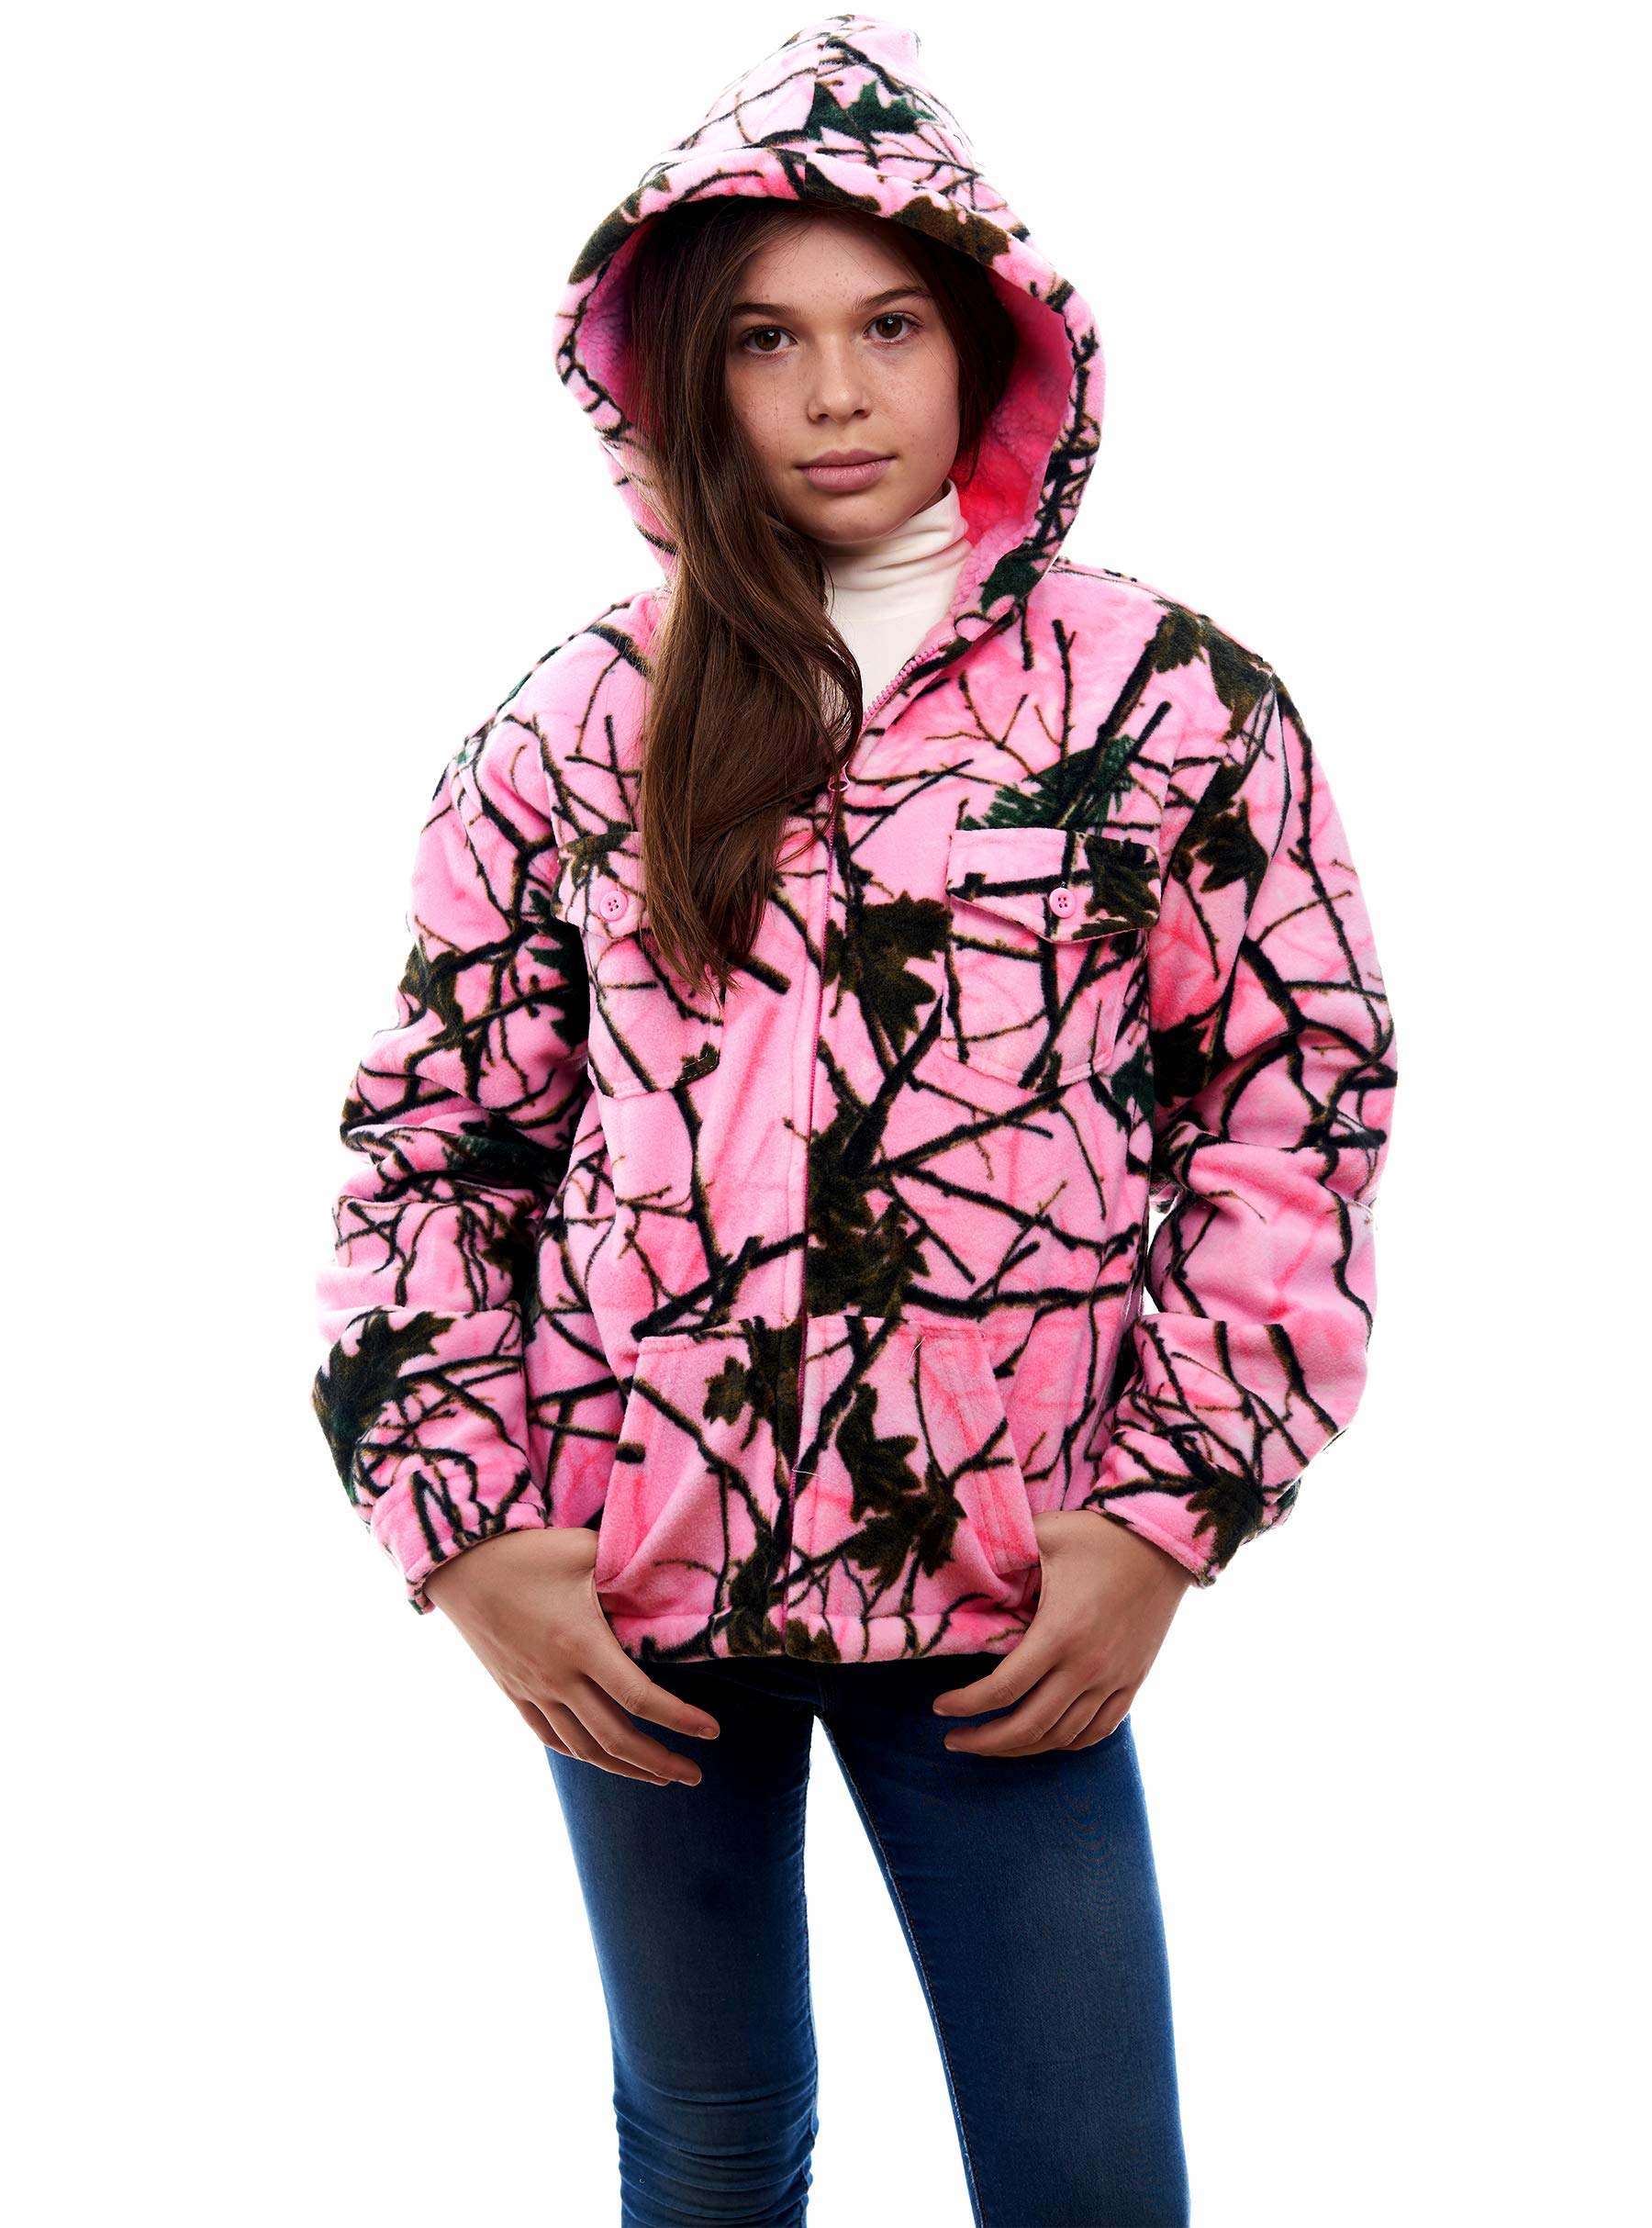 TrailCrest Kids Camo Ultra Soft & Warm Sherpa Lined Zip Up Hoodie Jacket (XL, Rose Camo) by TrailCrest